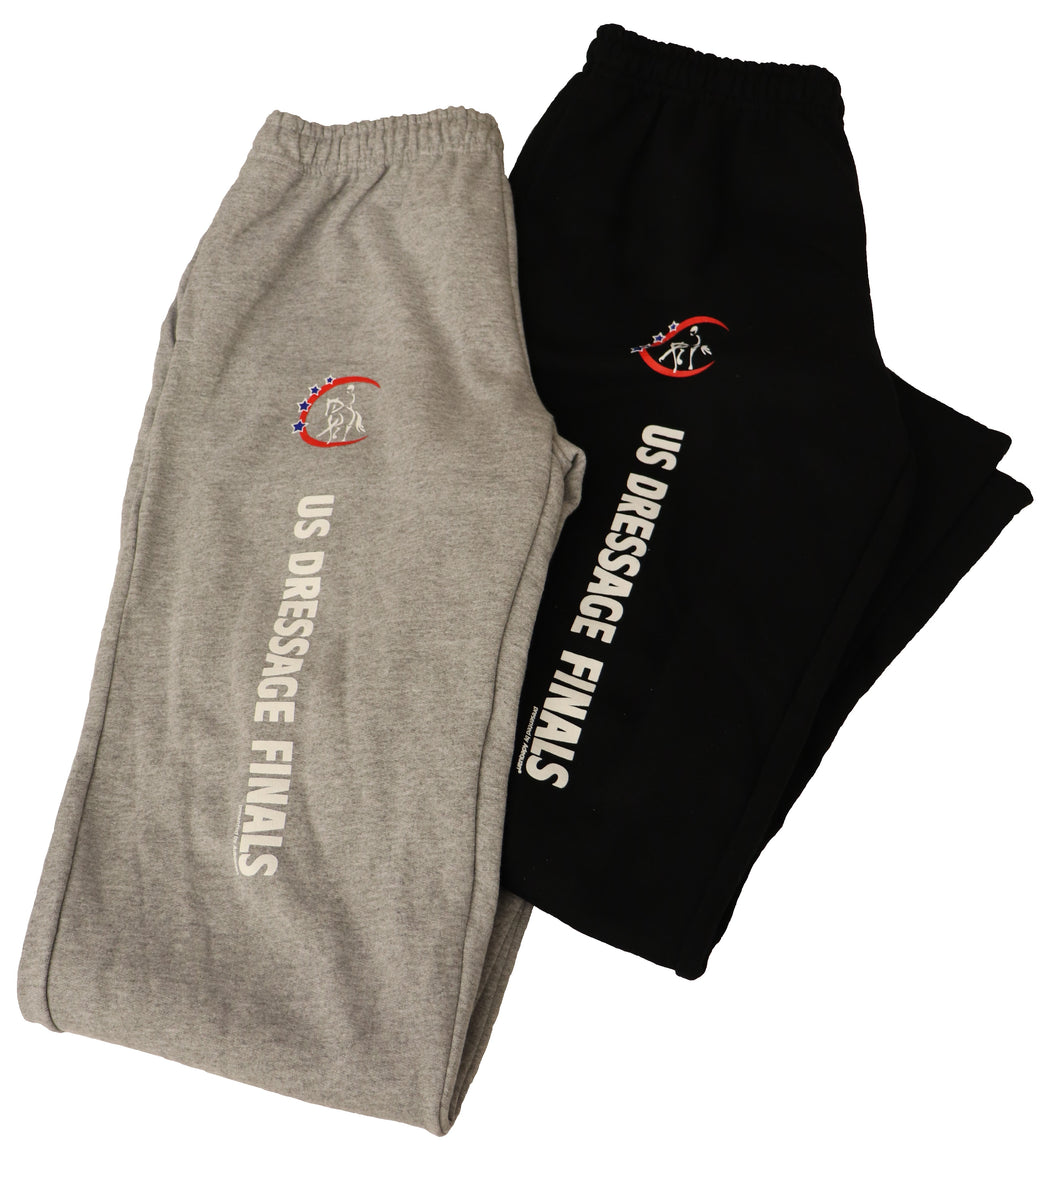 US Dressage Finals Sweatpants